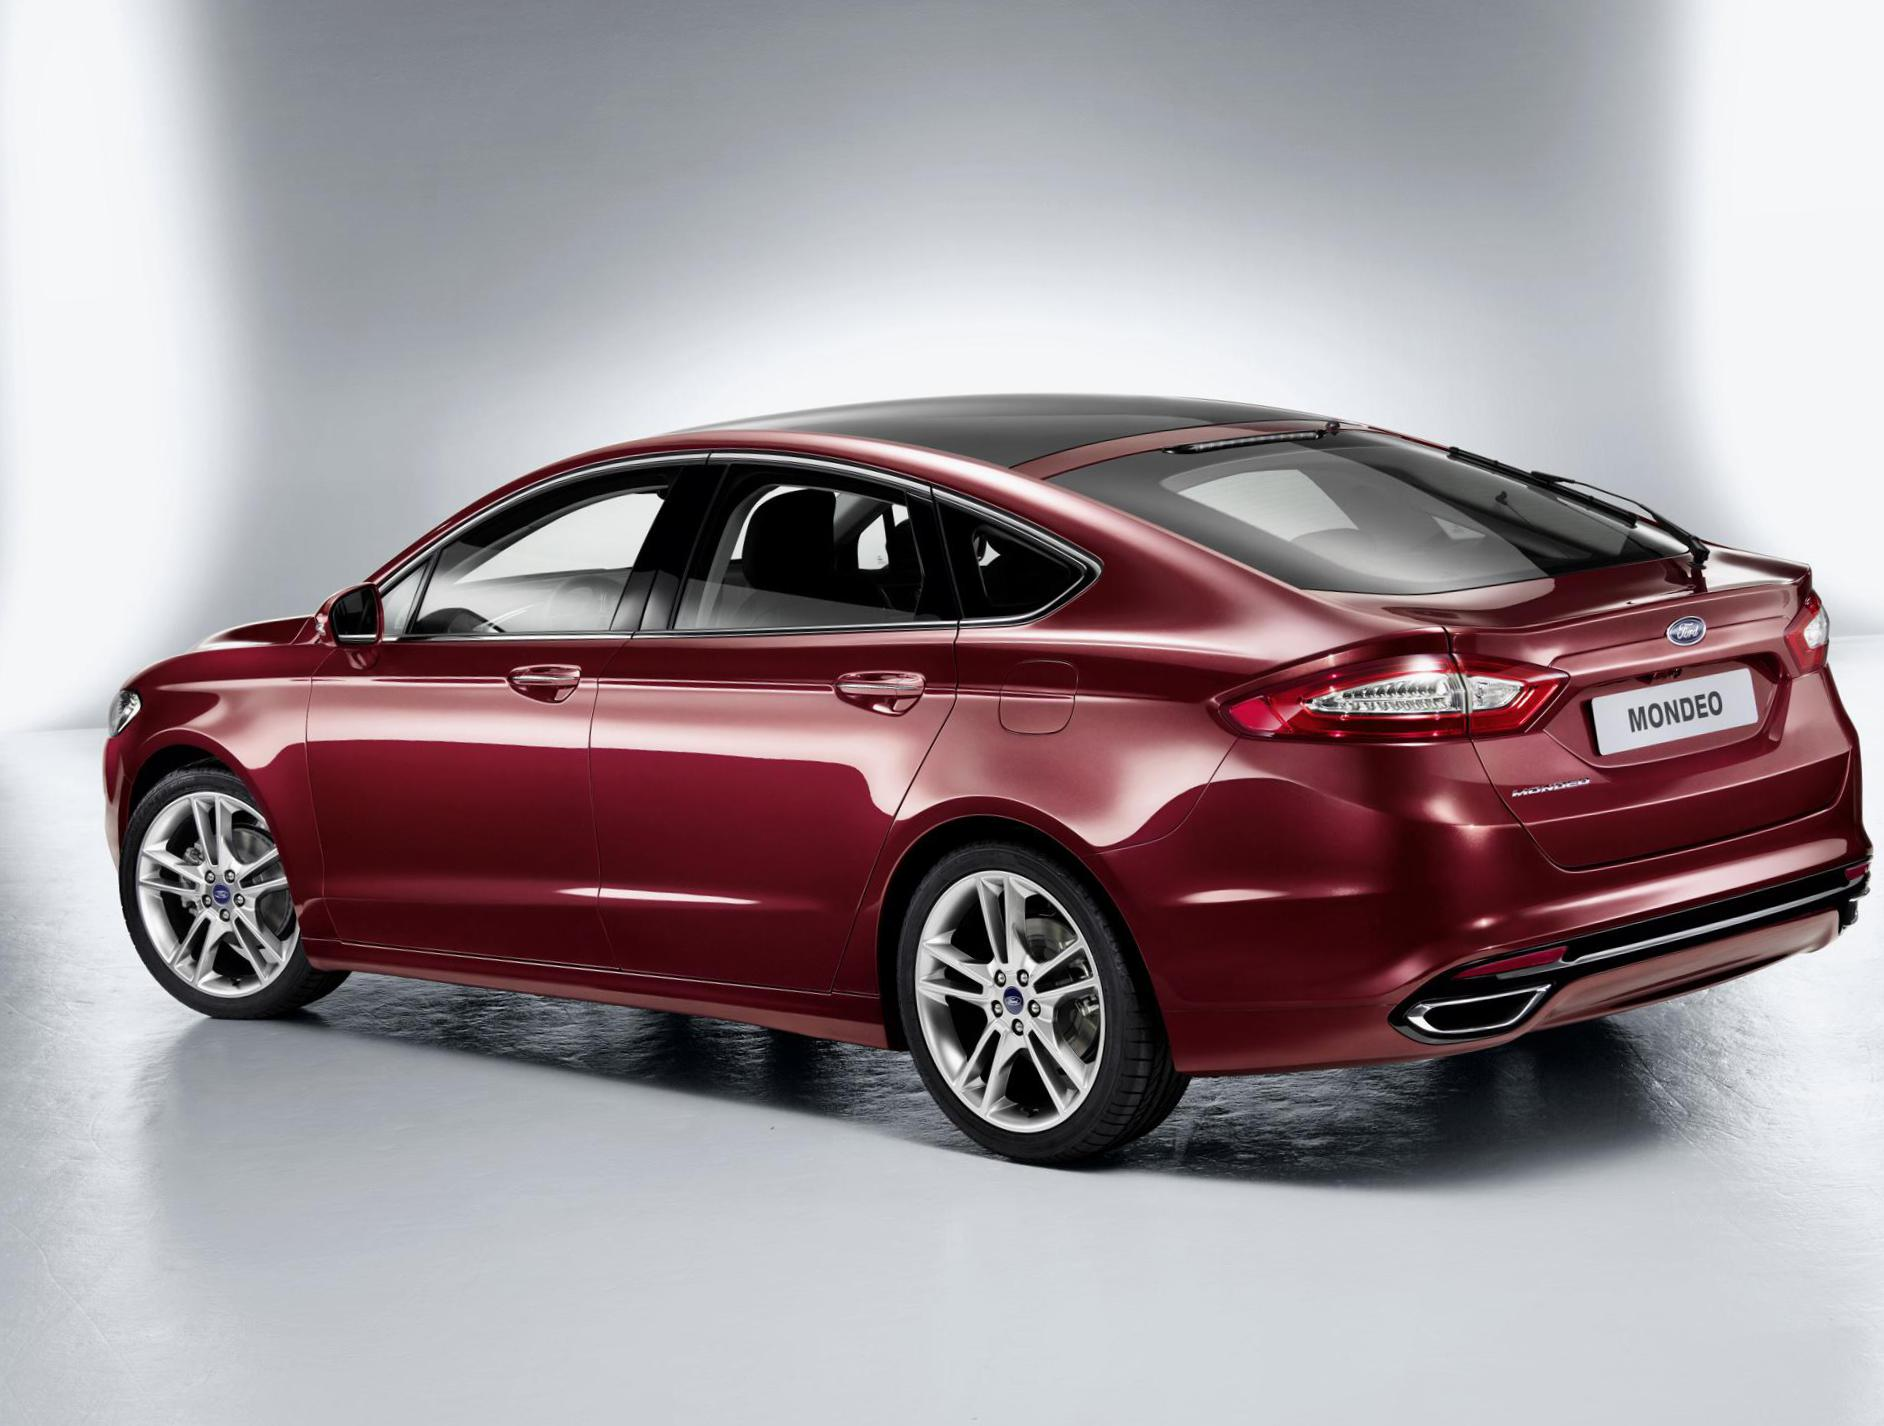 Mondeo Hatchback Ford configuration wagon